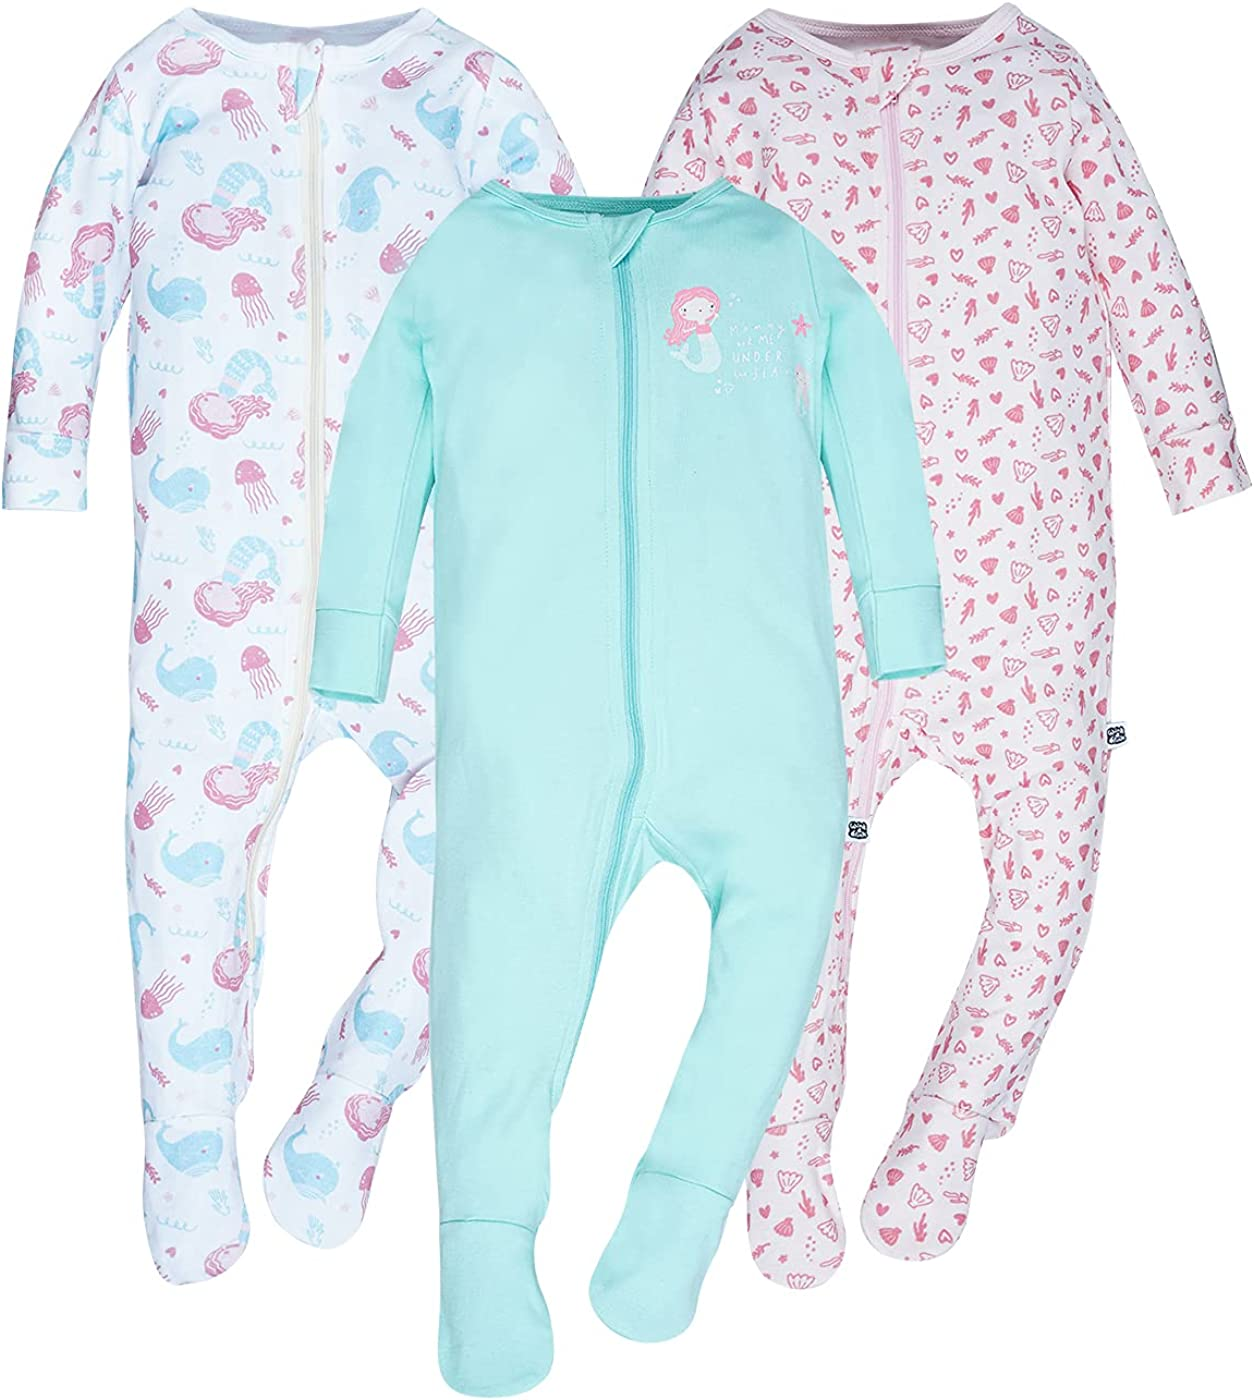 WINK & BLINk Under The Sea Organic Baby Sleep N' Play, 3-Pack Jumpsuit, 100% Organic One-Piece Cotton Fotted Pajamas